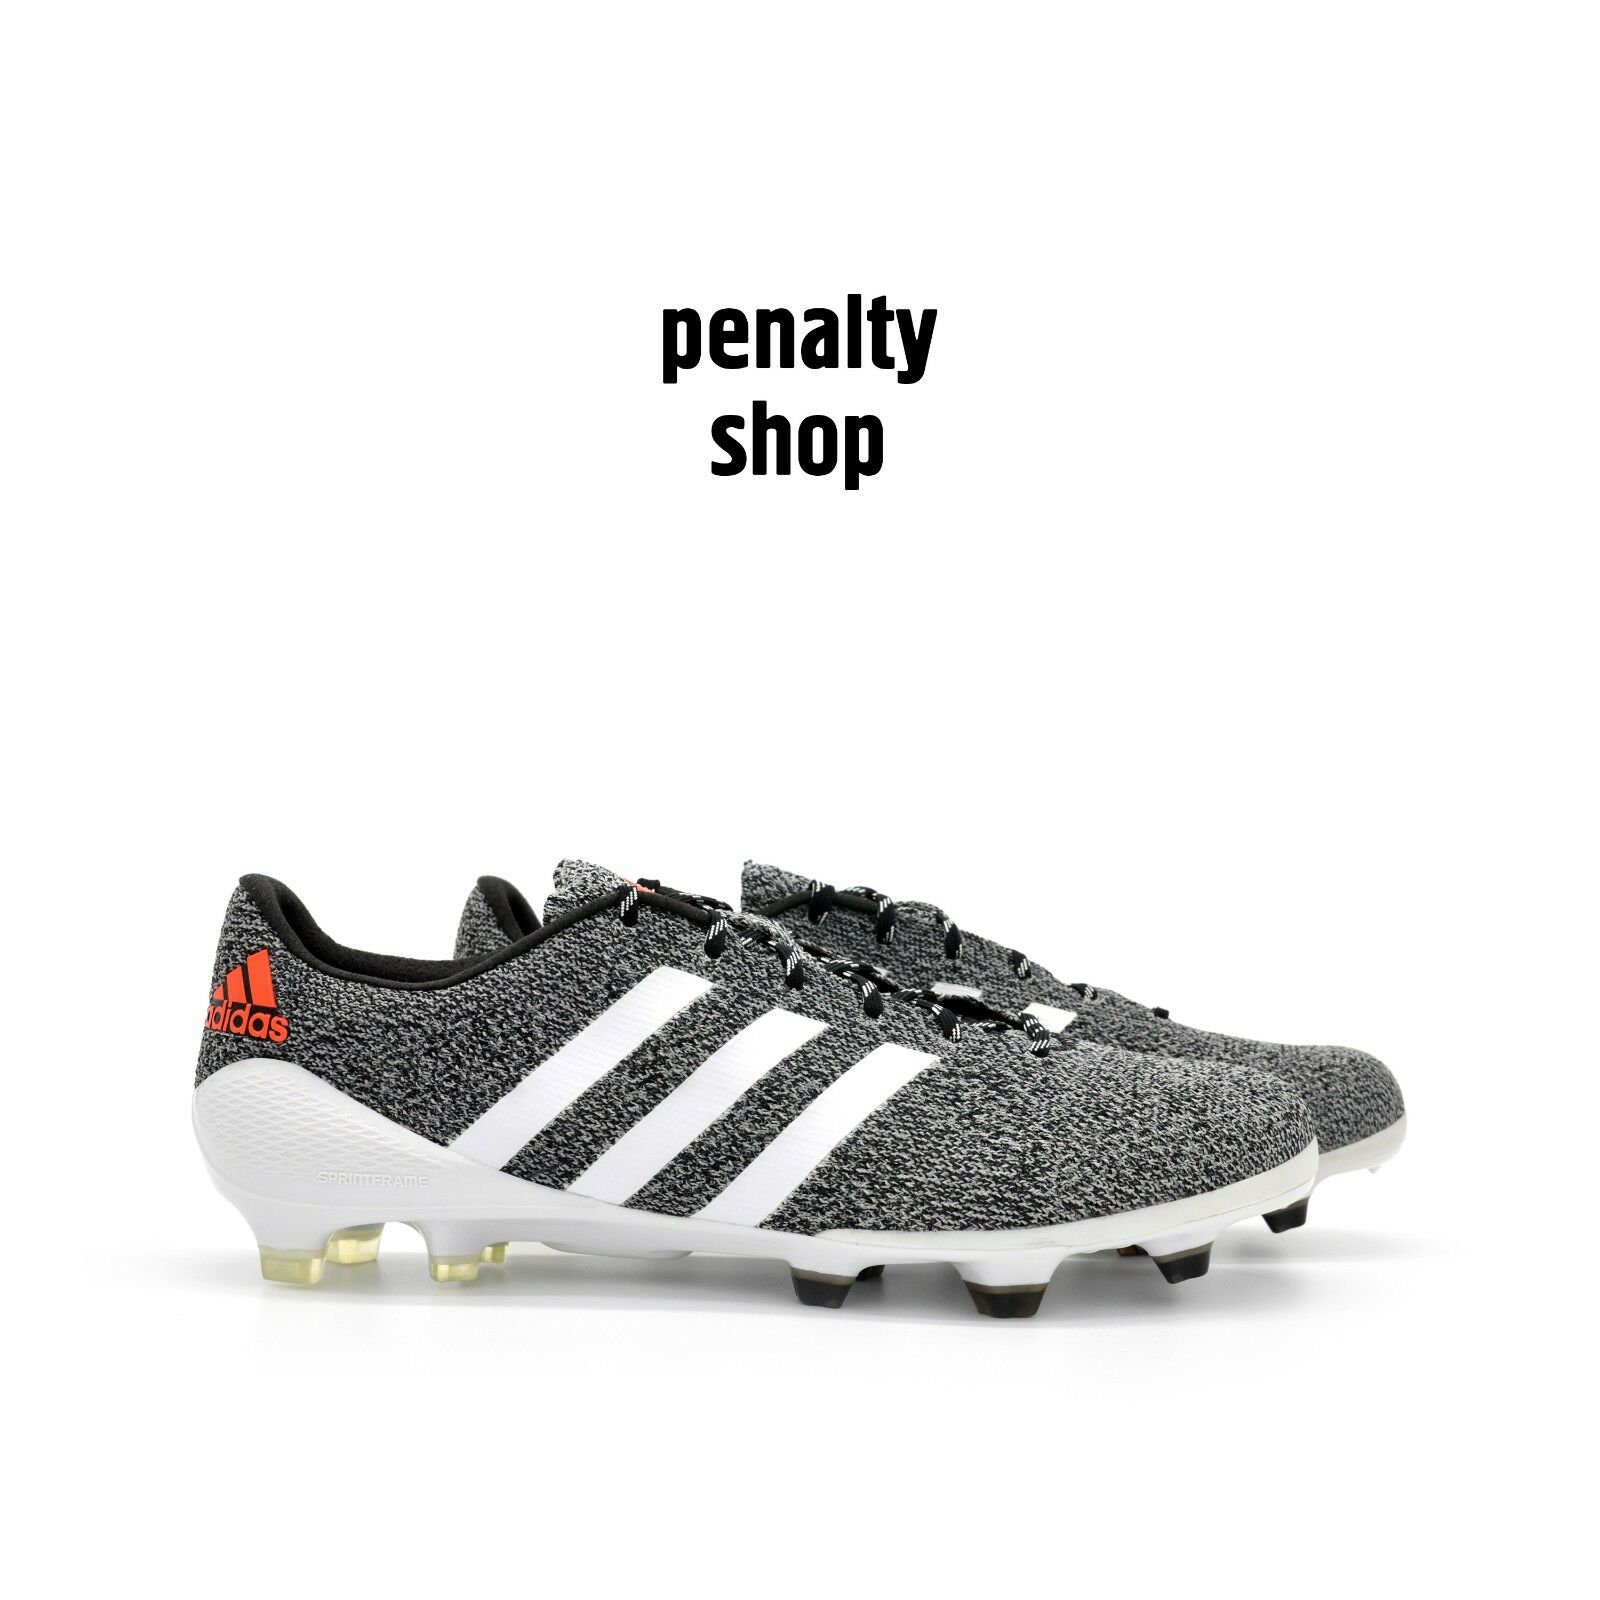 Adidas Football Primeknit FG SAMPLE B26544 RARE Limited Edition ONLY 500 PAIRS